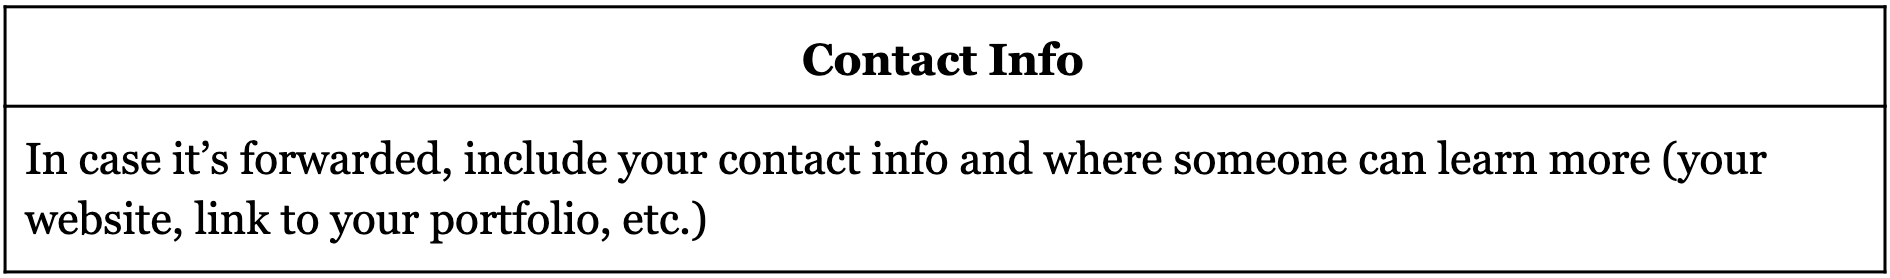 Contact Info.png